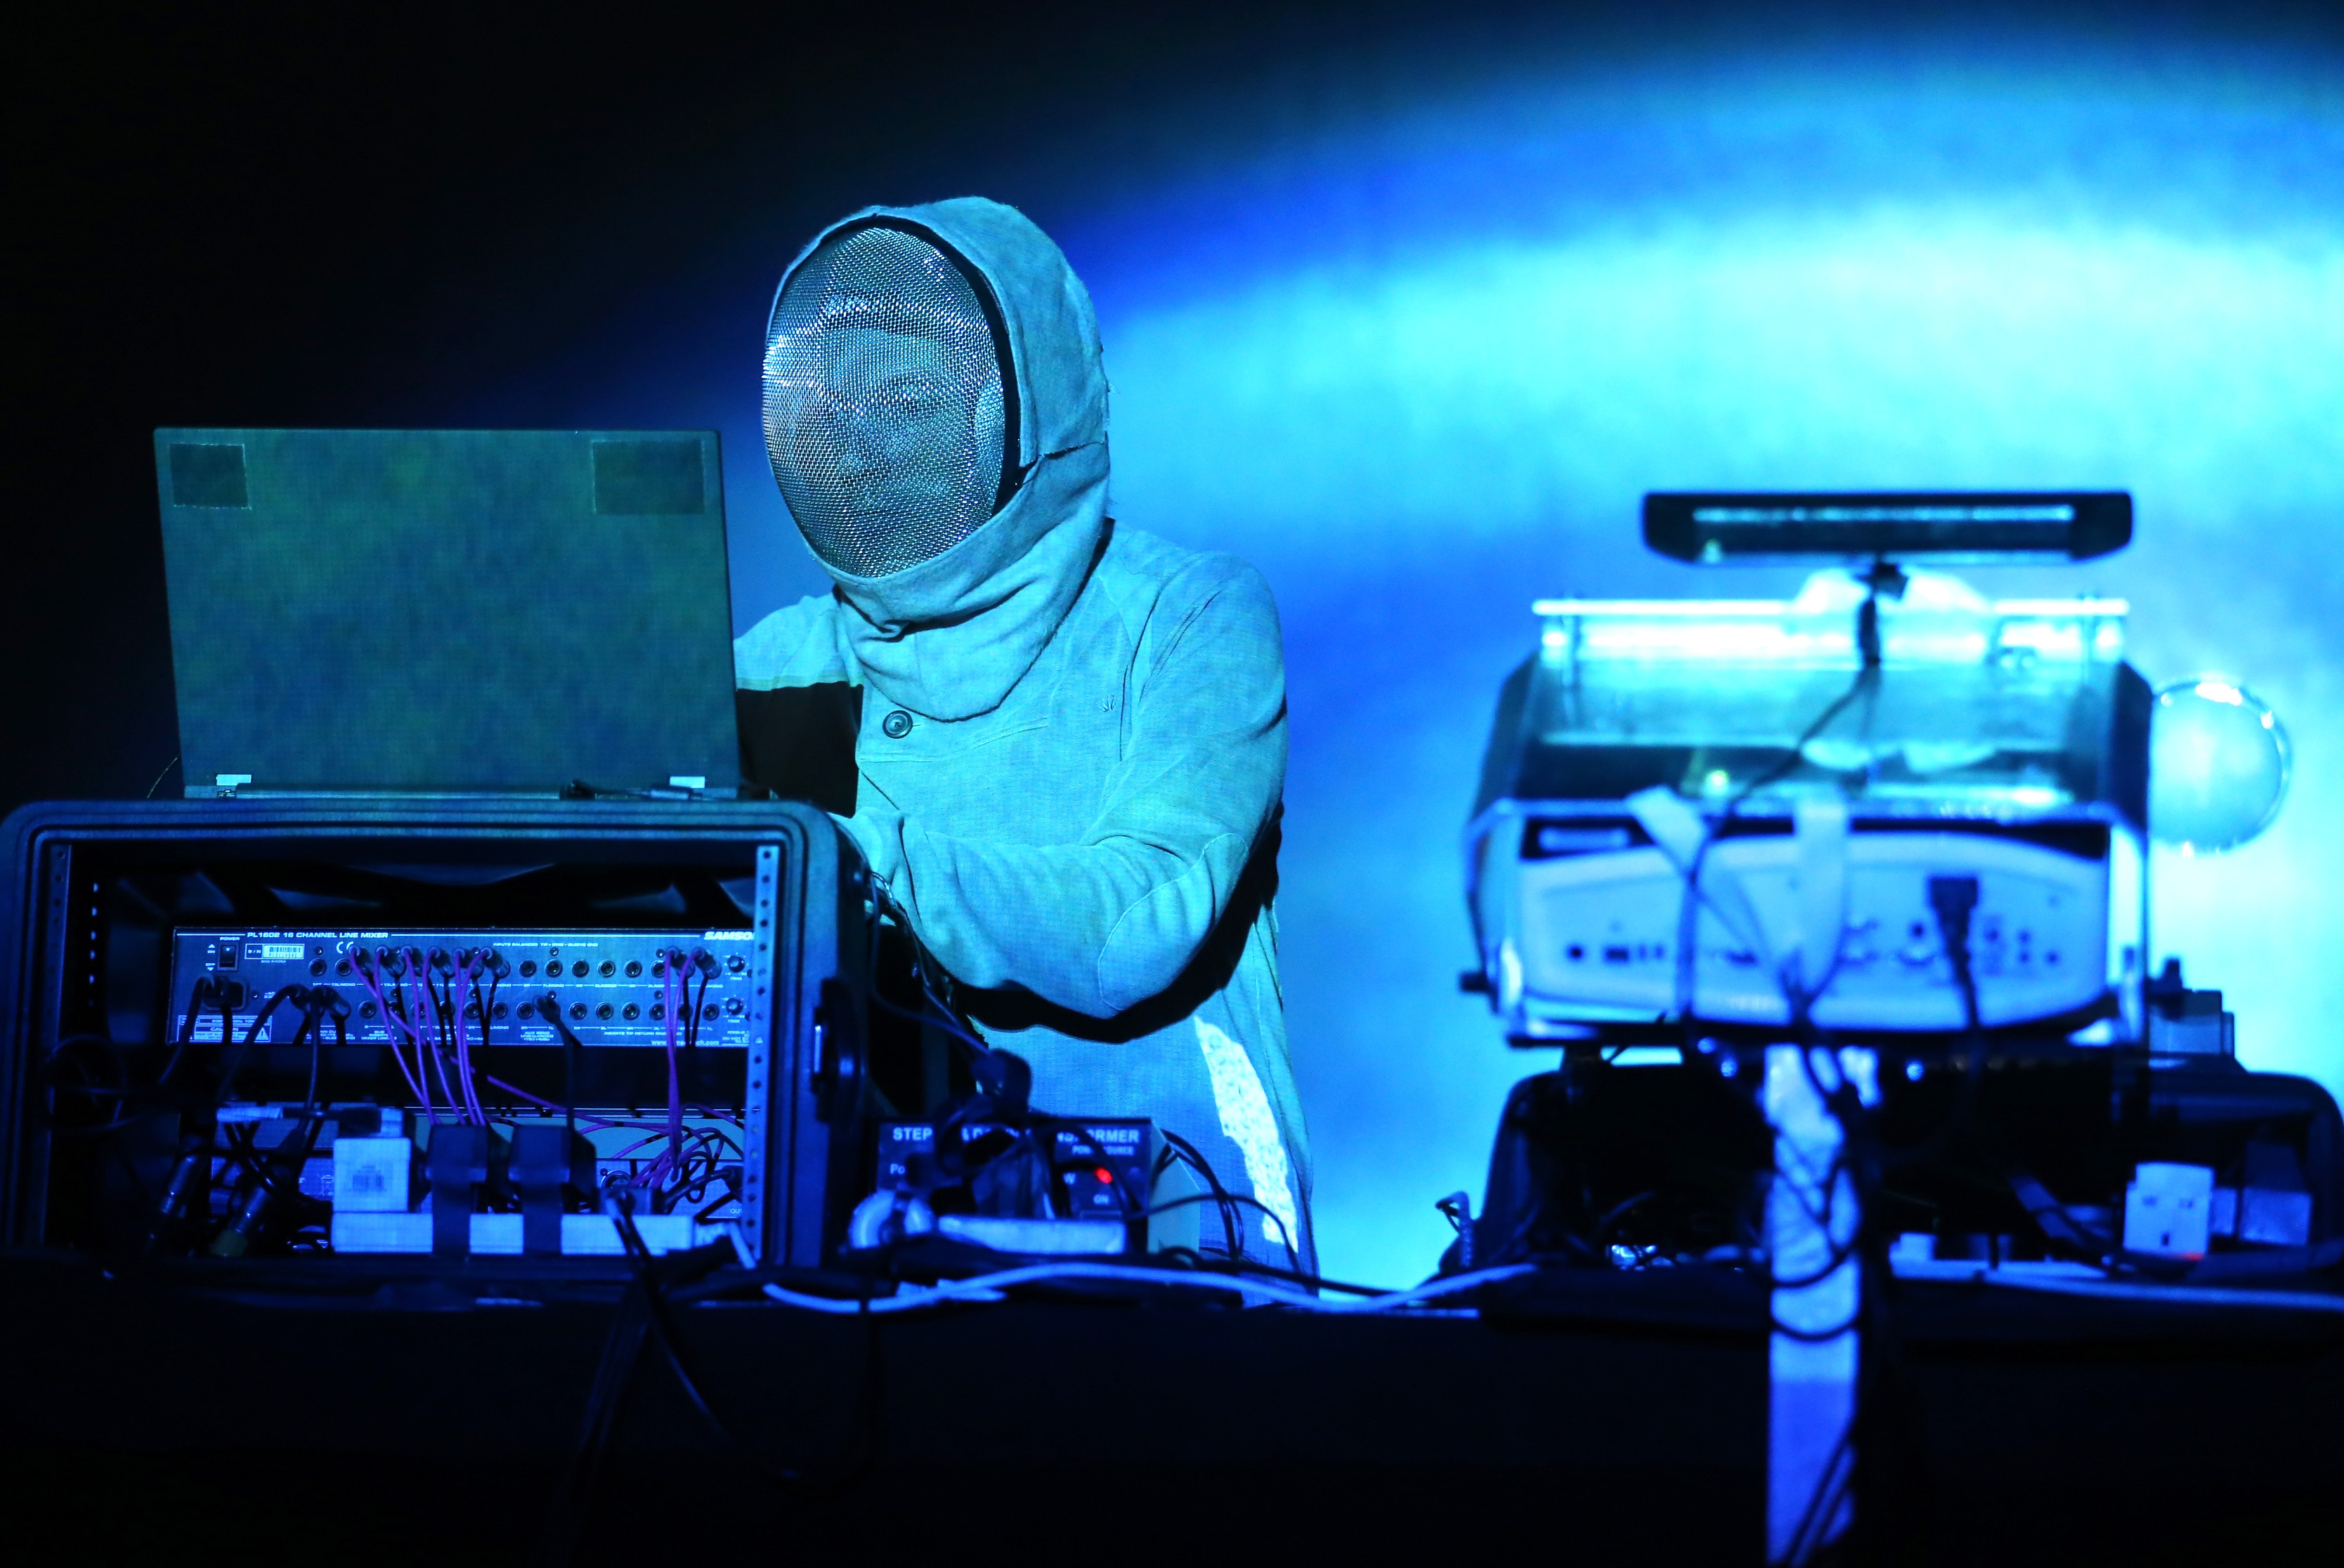 Squarepusher at 2015 Coachella Valley Music And Ar